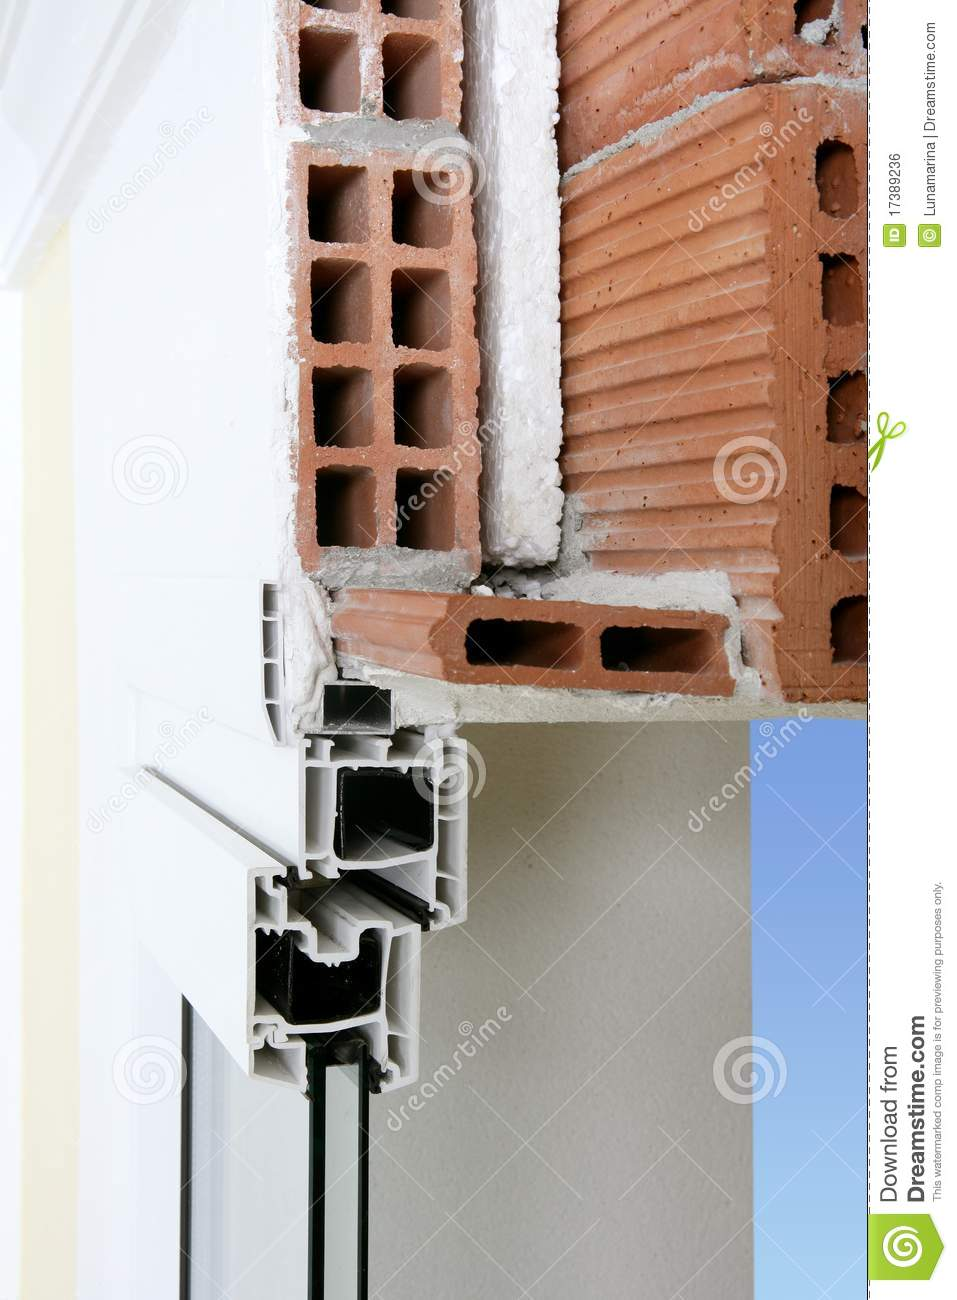 Pvc Window Section : Facade wall cross section of pvc window royalty free stock